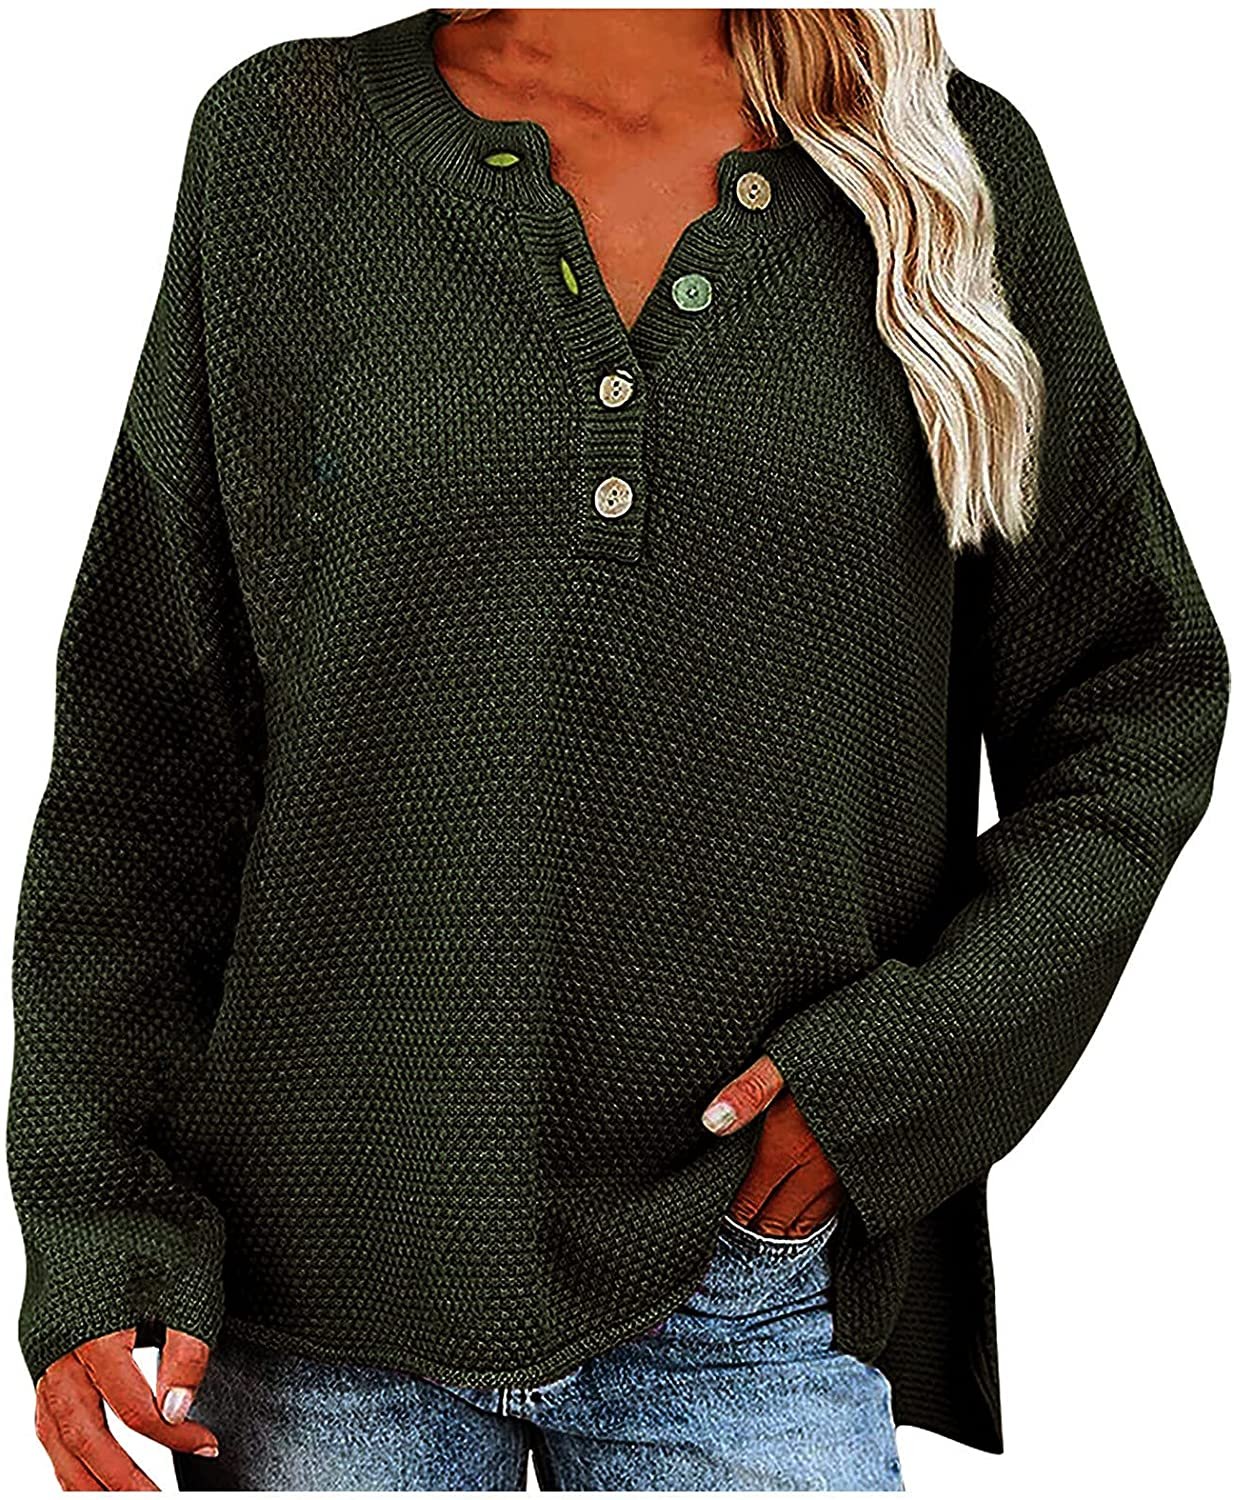 Women's Batwing Sleeve Knit Sweater Loose Fashion Long Sleeve V Neck Button Casual Jumper Tops Ladies Pullover Tops